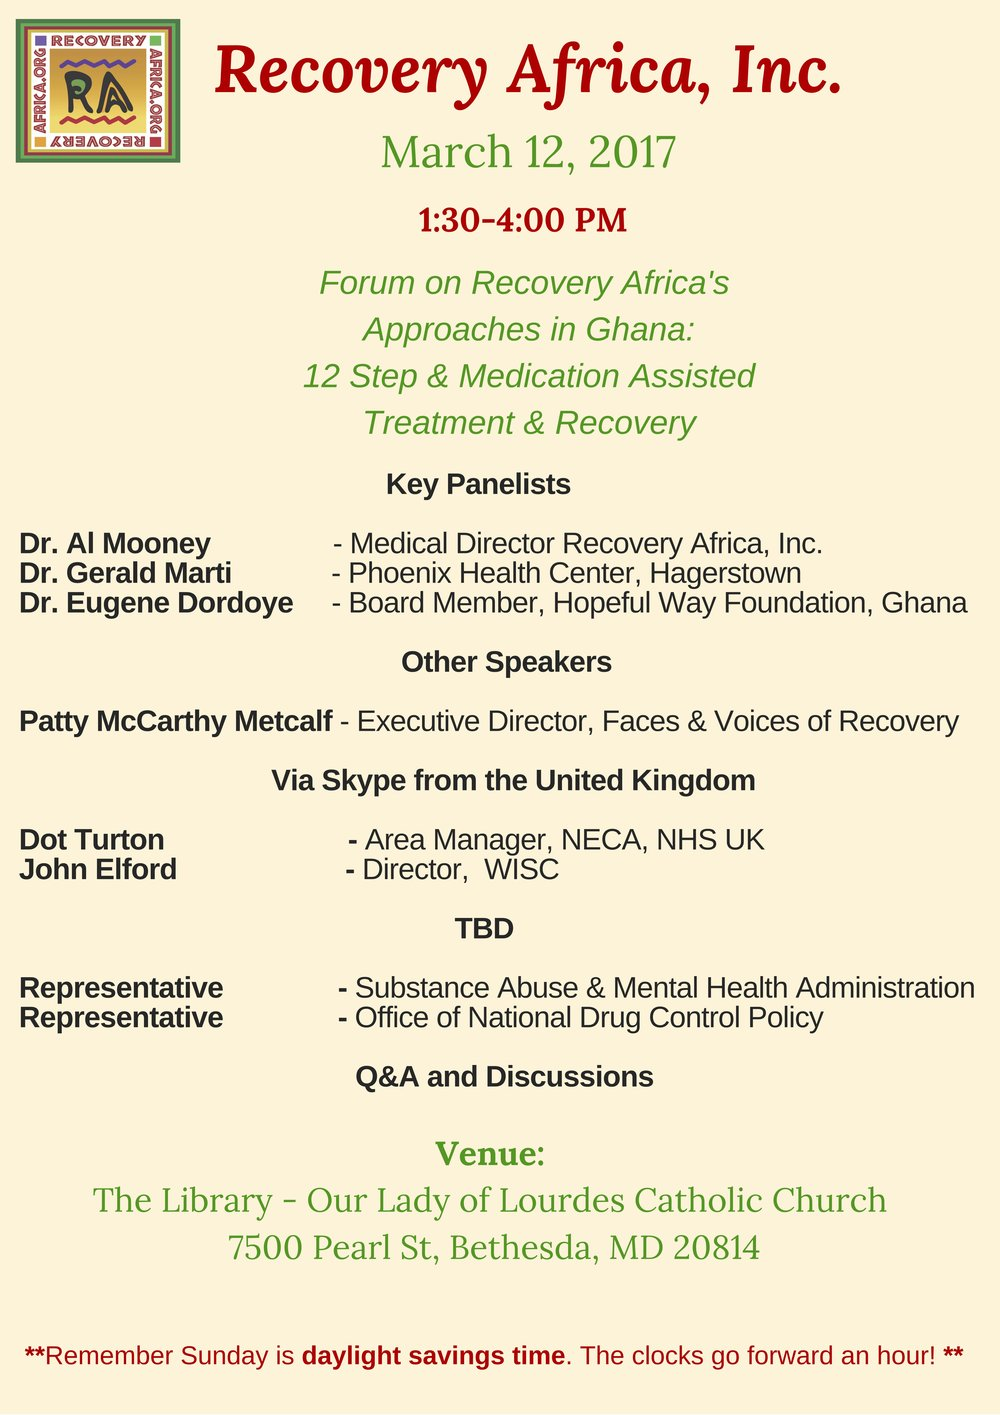 Forum on Recovery Africa, Inc 's Approaches in Ghana: 12